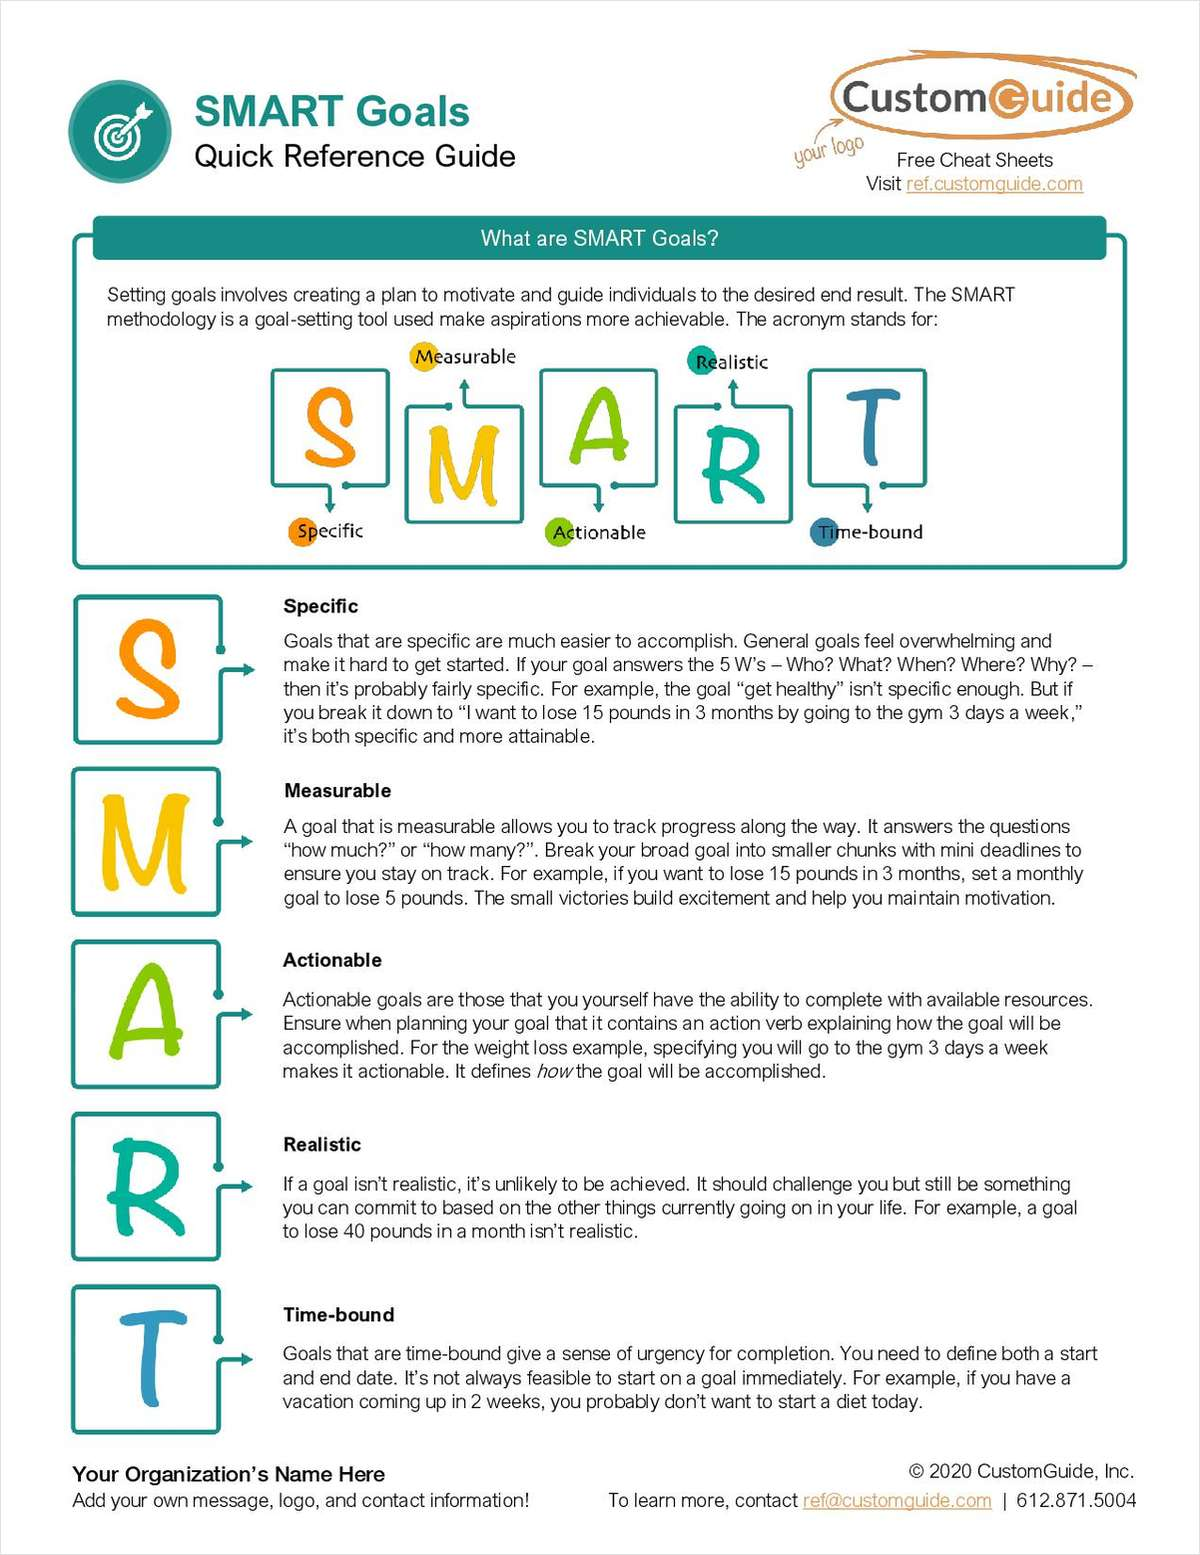 SMART Goals Quick Reference Guide